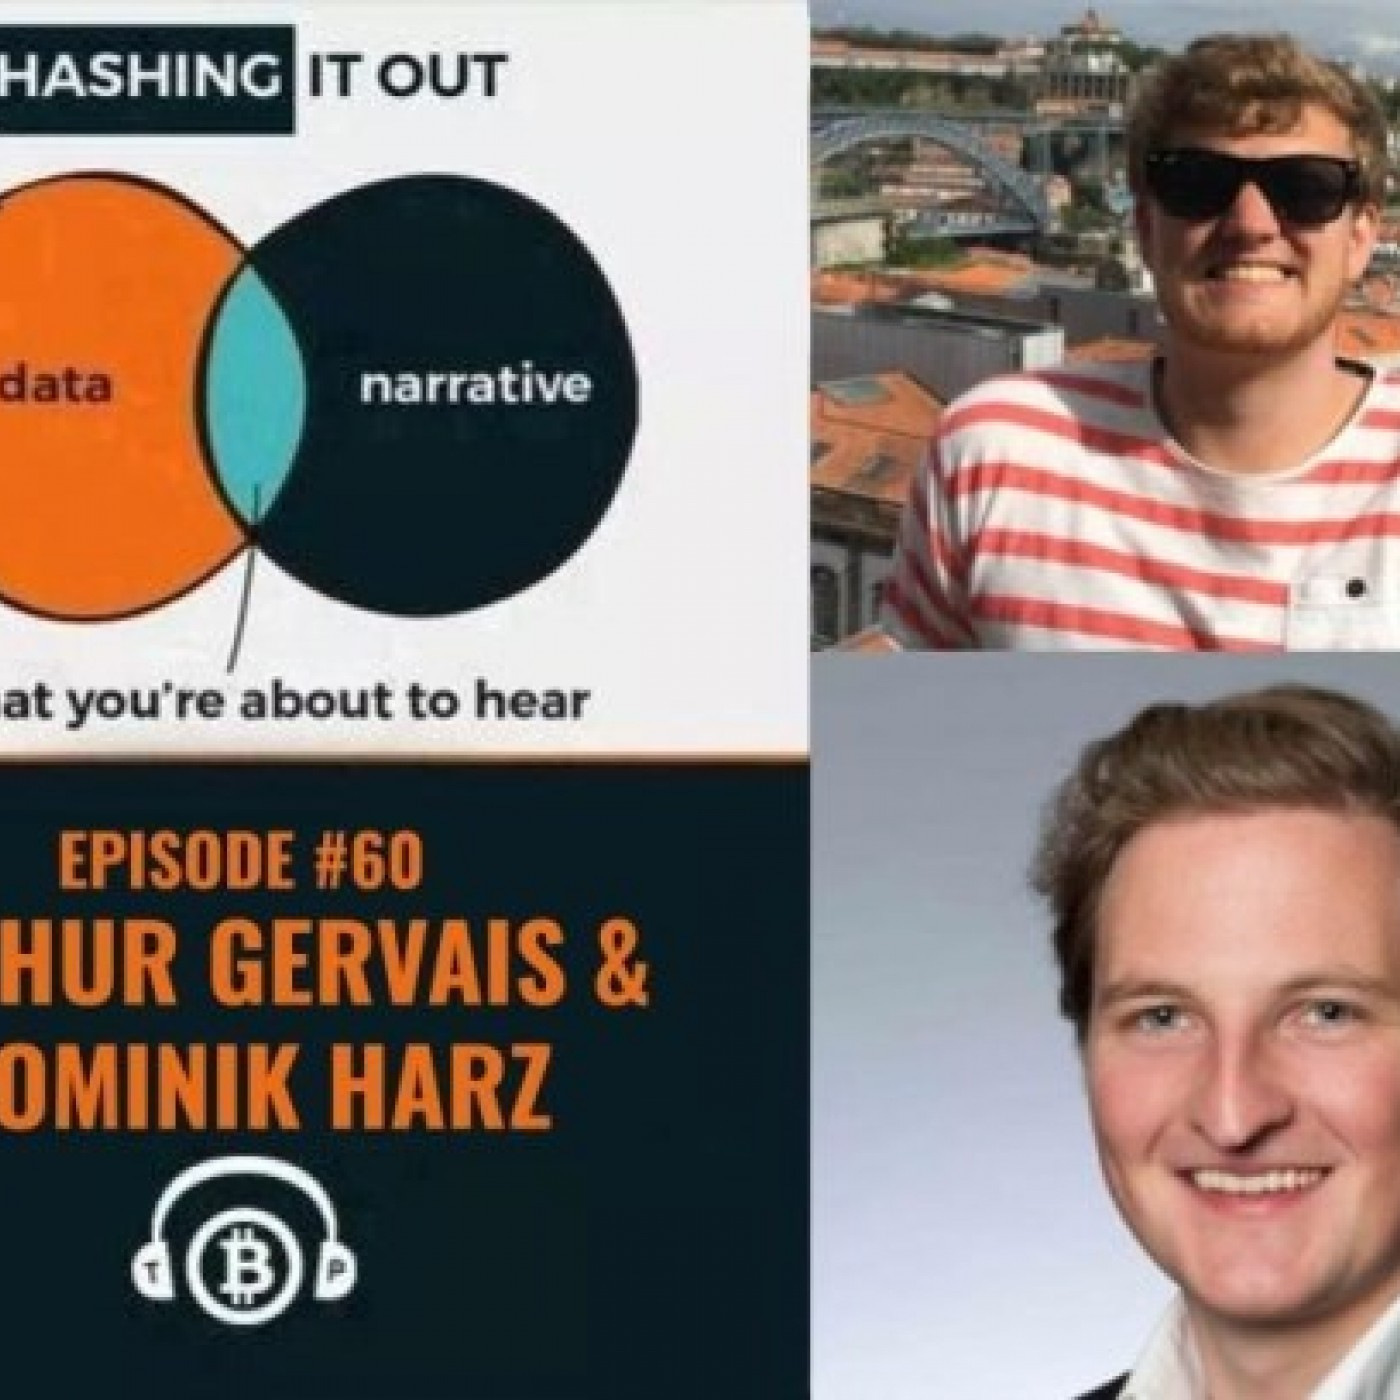 Hashing It Out #60 – Balance Research – Arthur Gervais & Dominik Harz